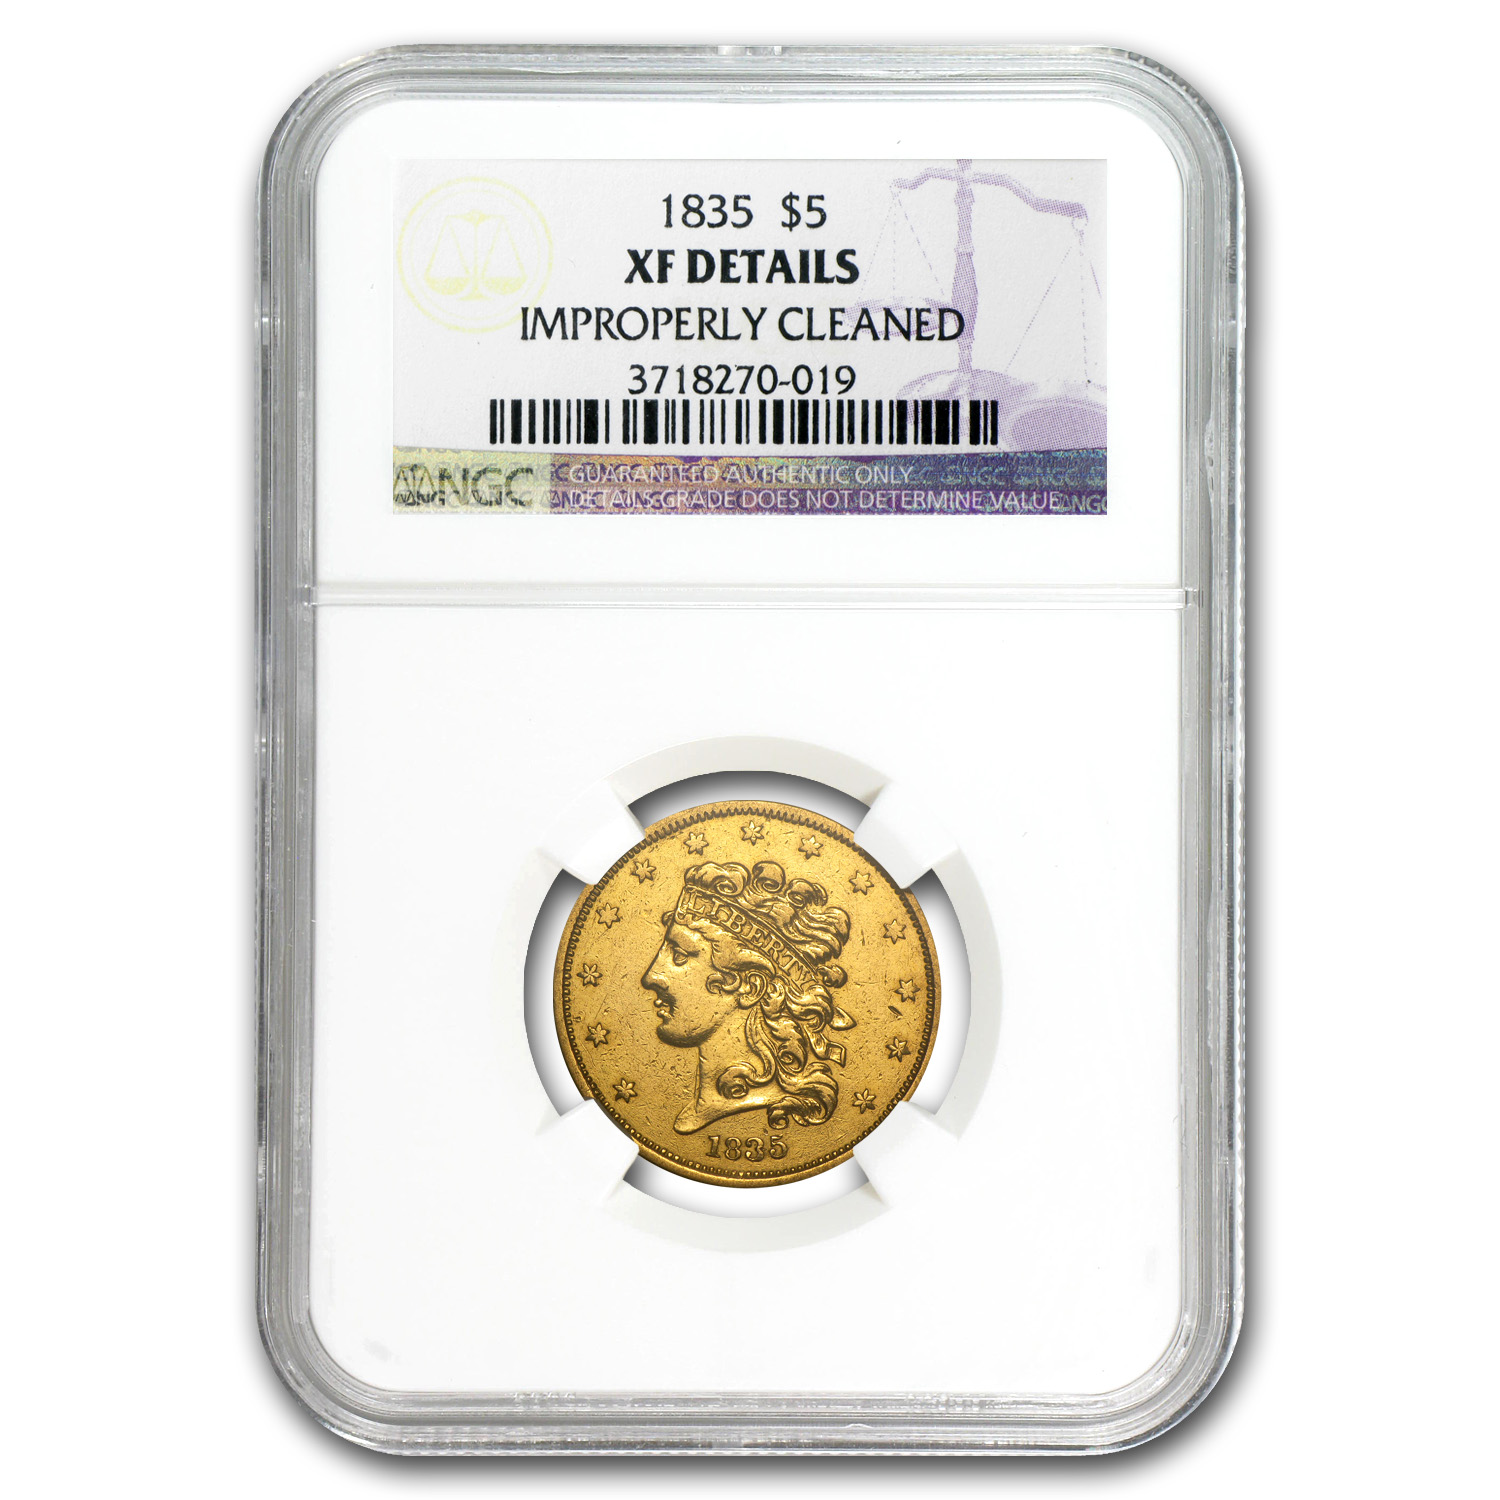 1835 $5 Gold Classic Head Half Eagle - XF Details NGC - (Cleaned)